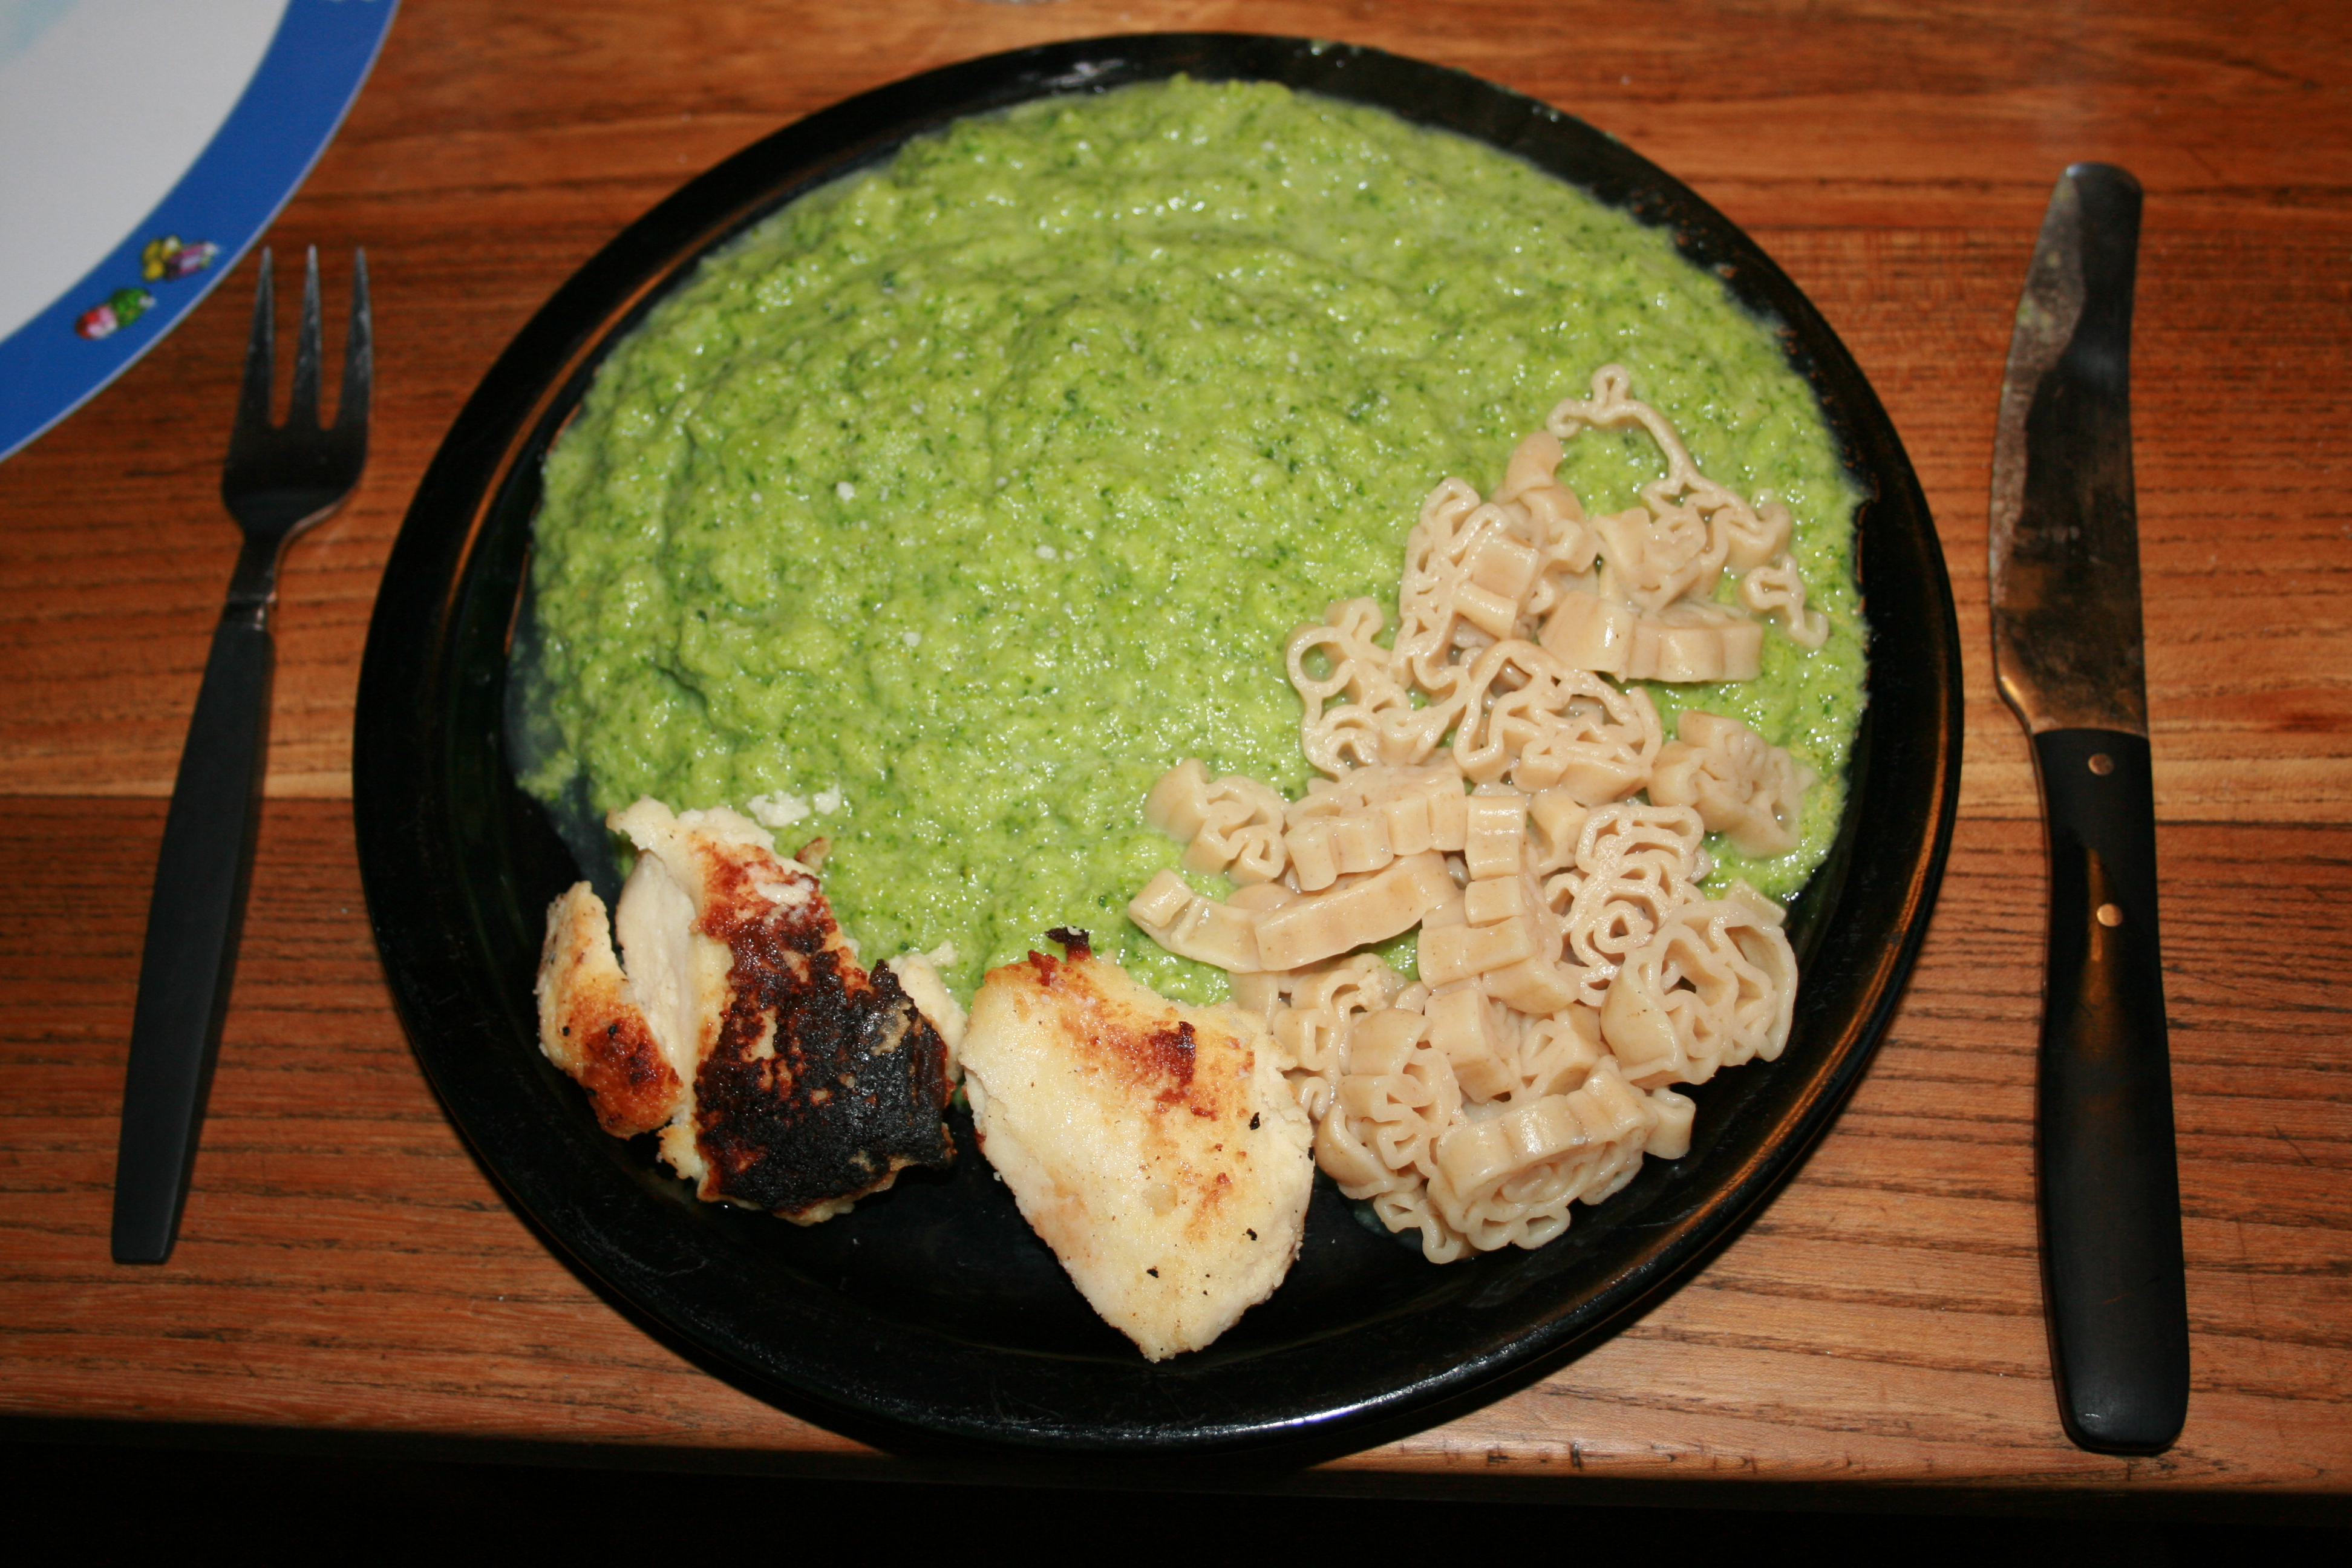 Fish cakes mashed broccoli and pasta organicfoodandliving for Old fashioned cod fish cakes